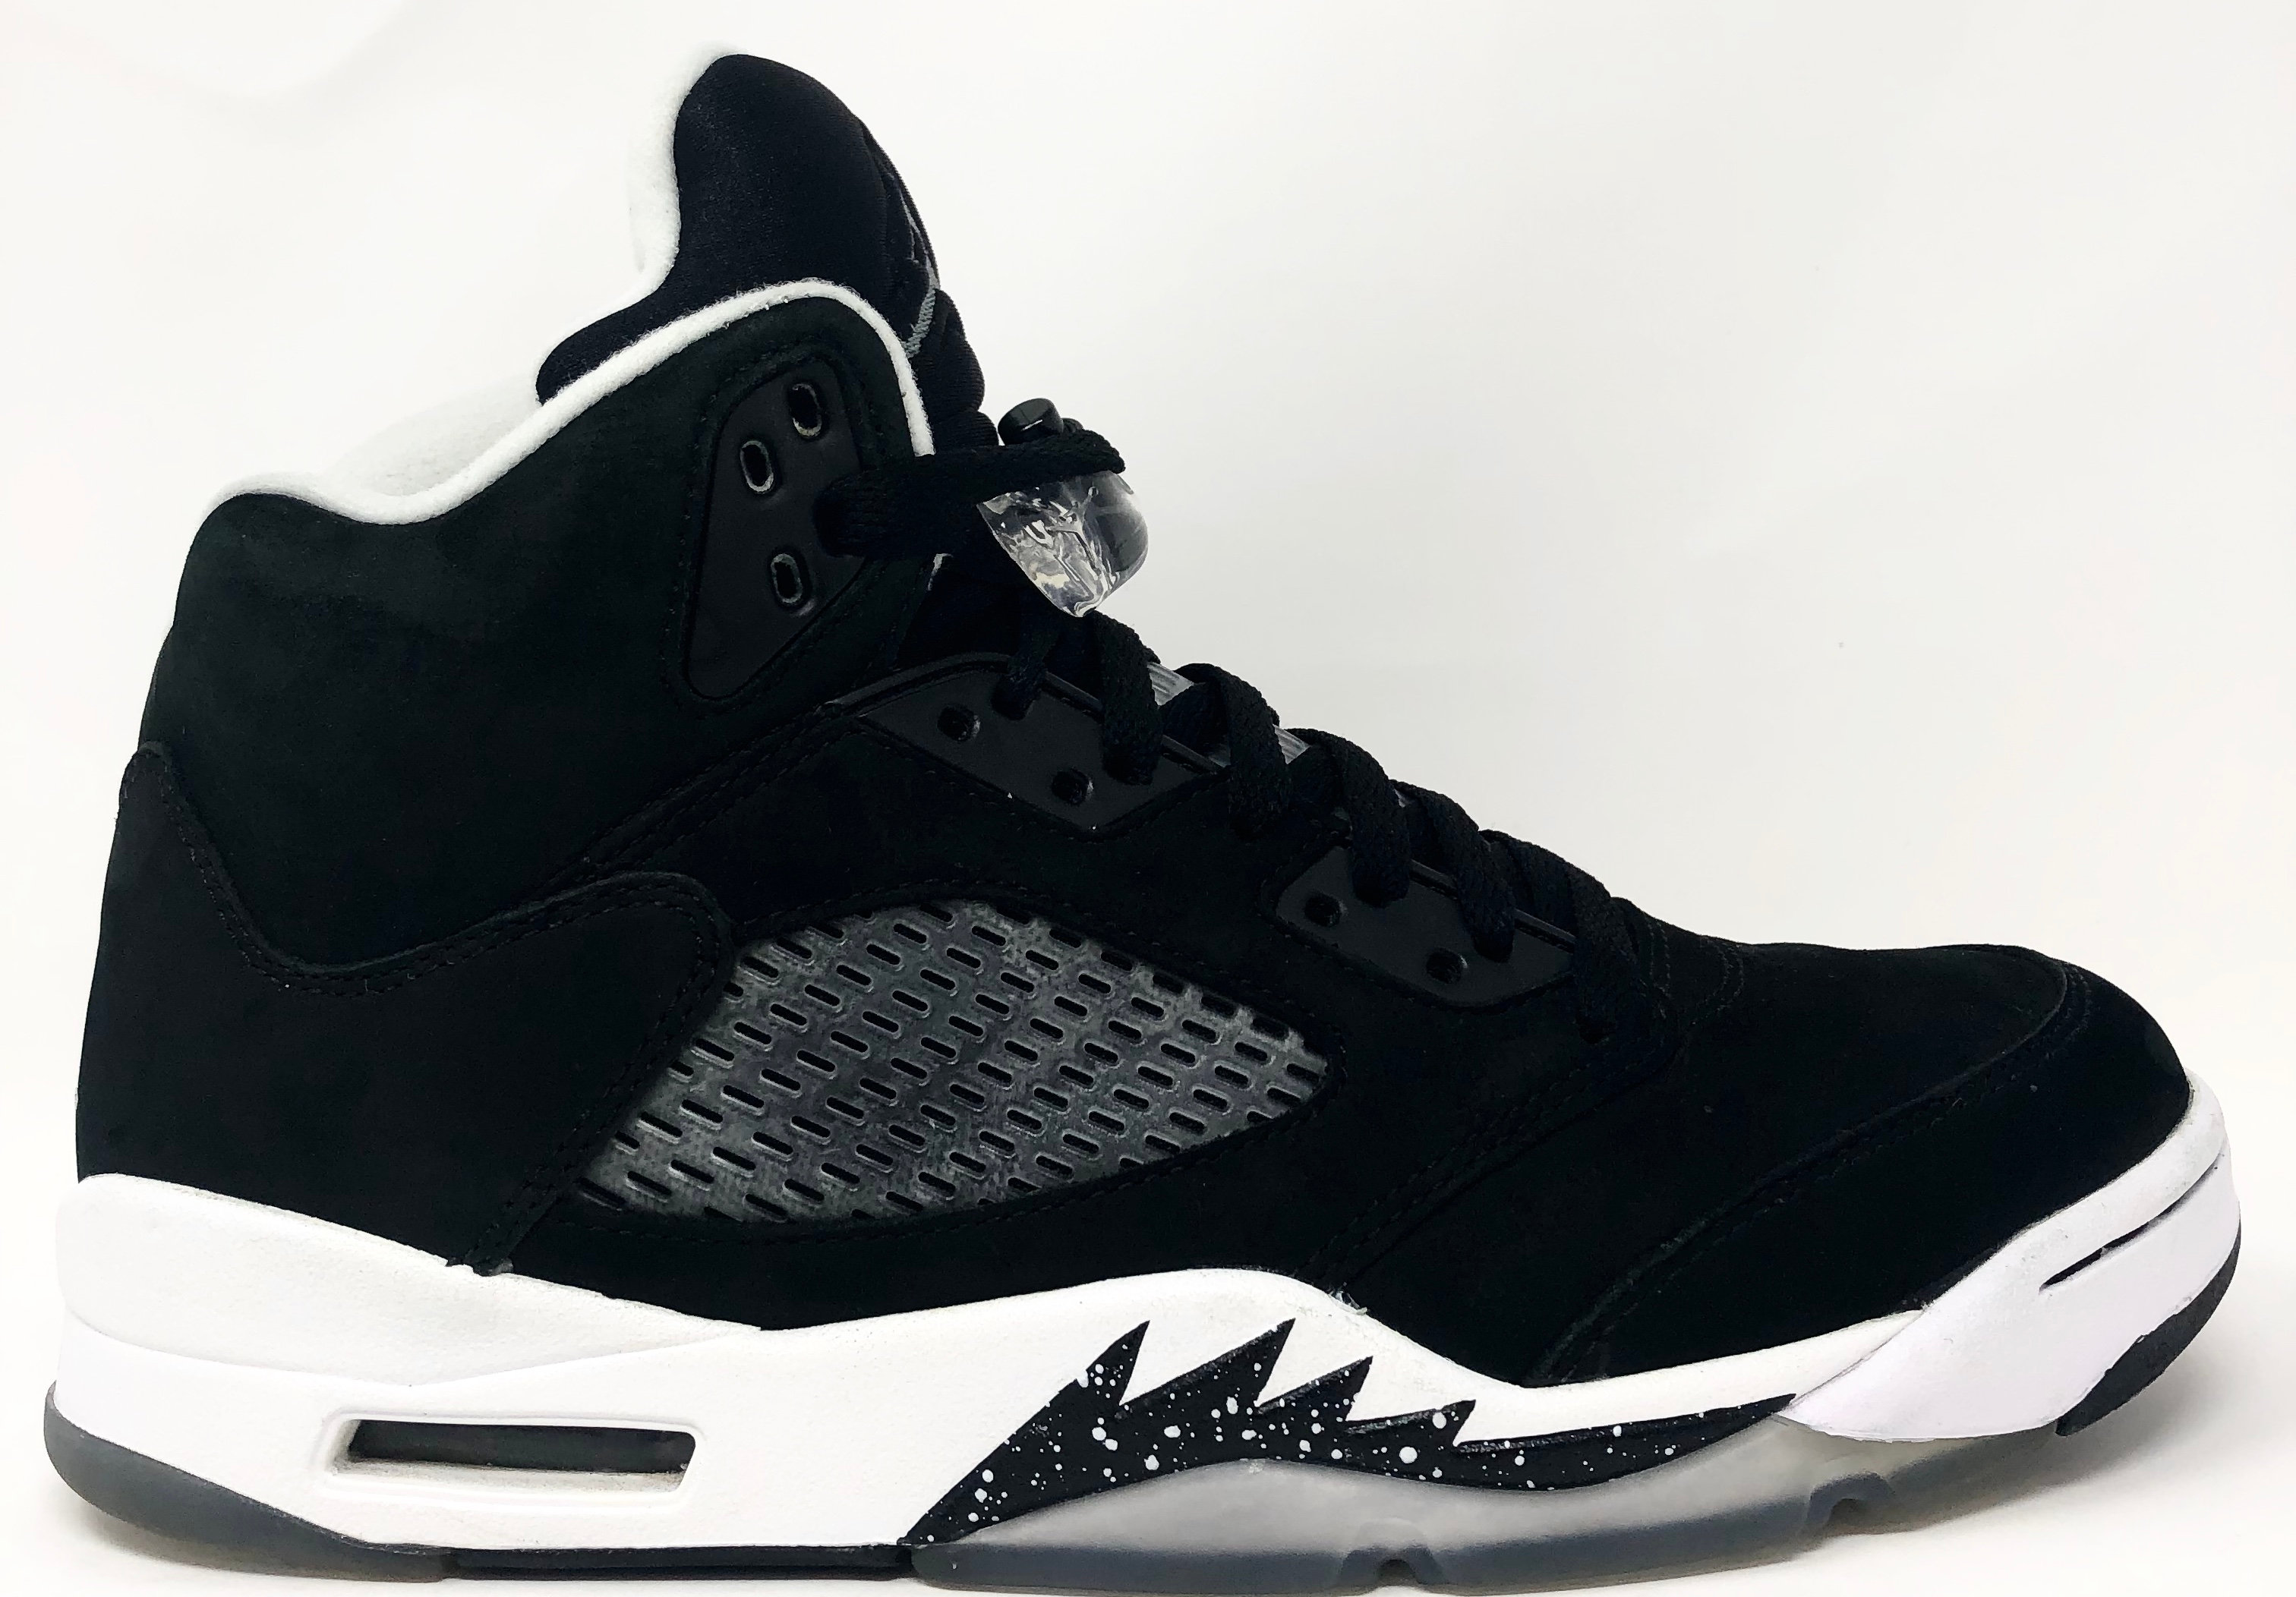 quality design c7dc2 bf1b4 Air Jordan 5 Retro Oreo